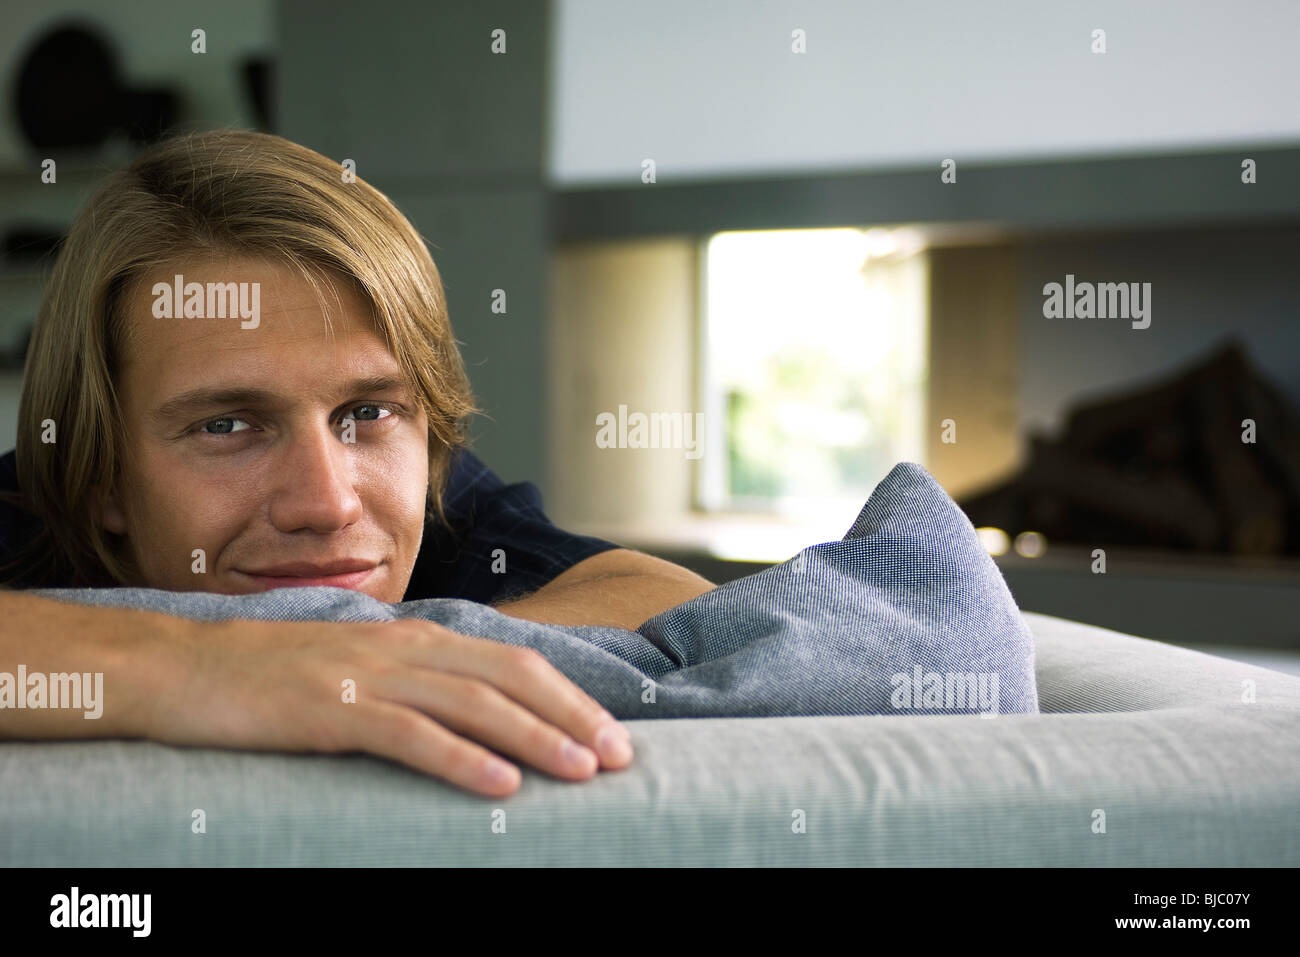 Man relaxing on sofa, smiling, portrait - Stock Image